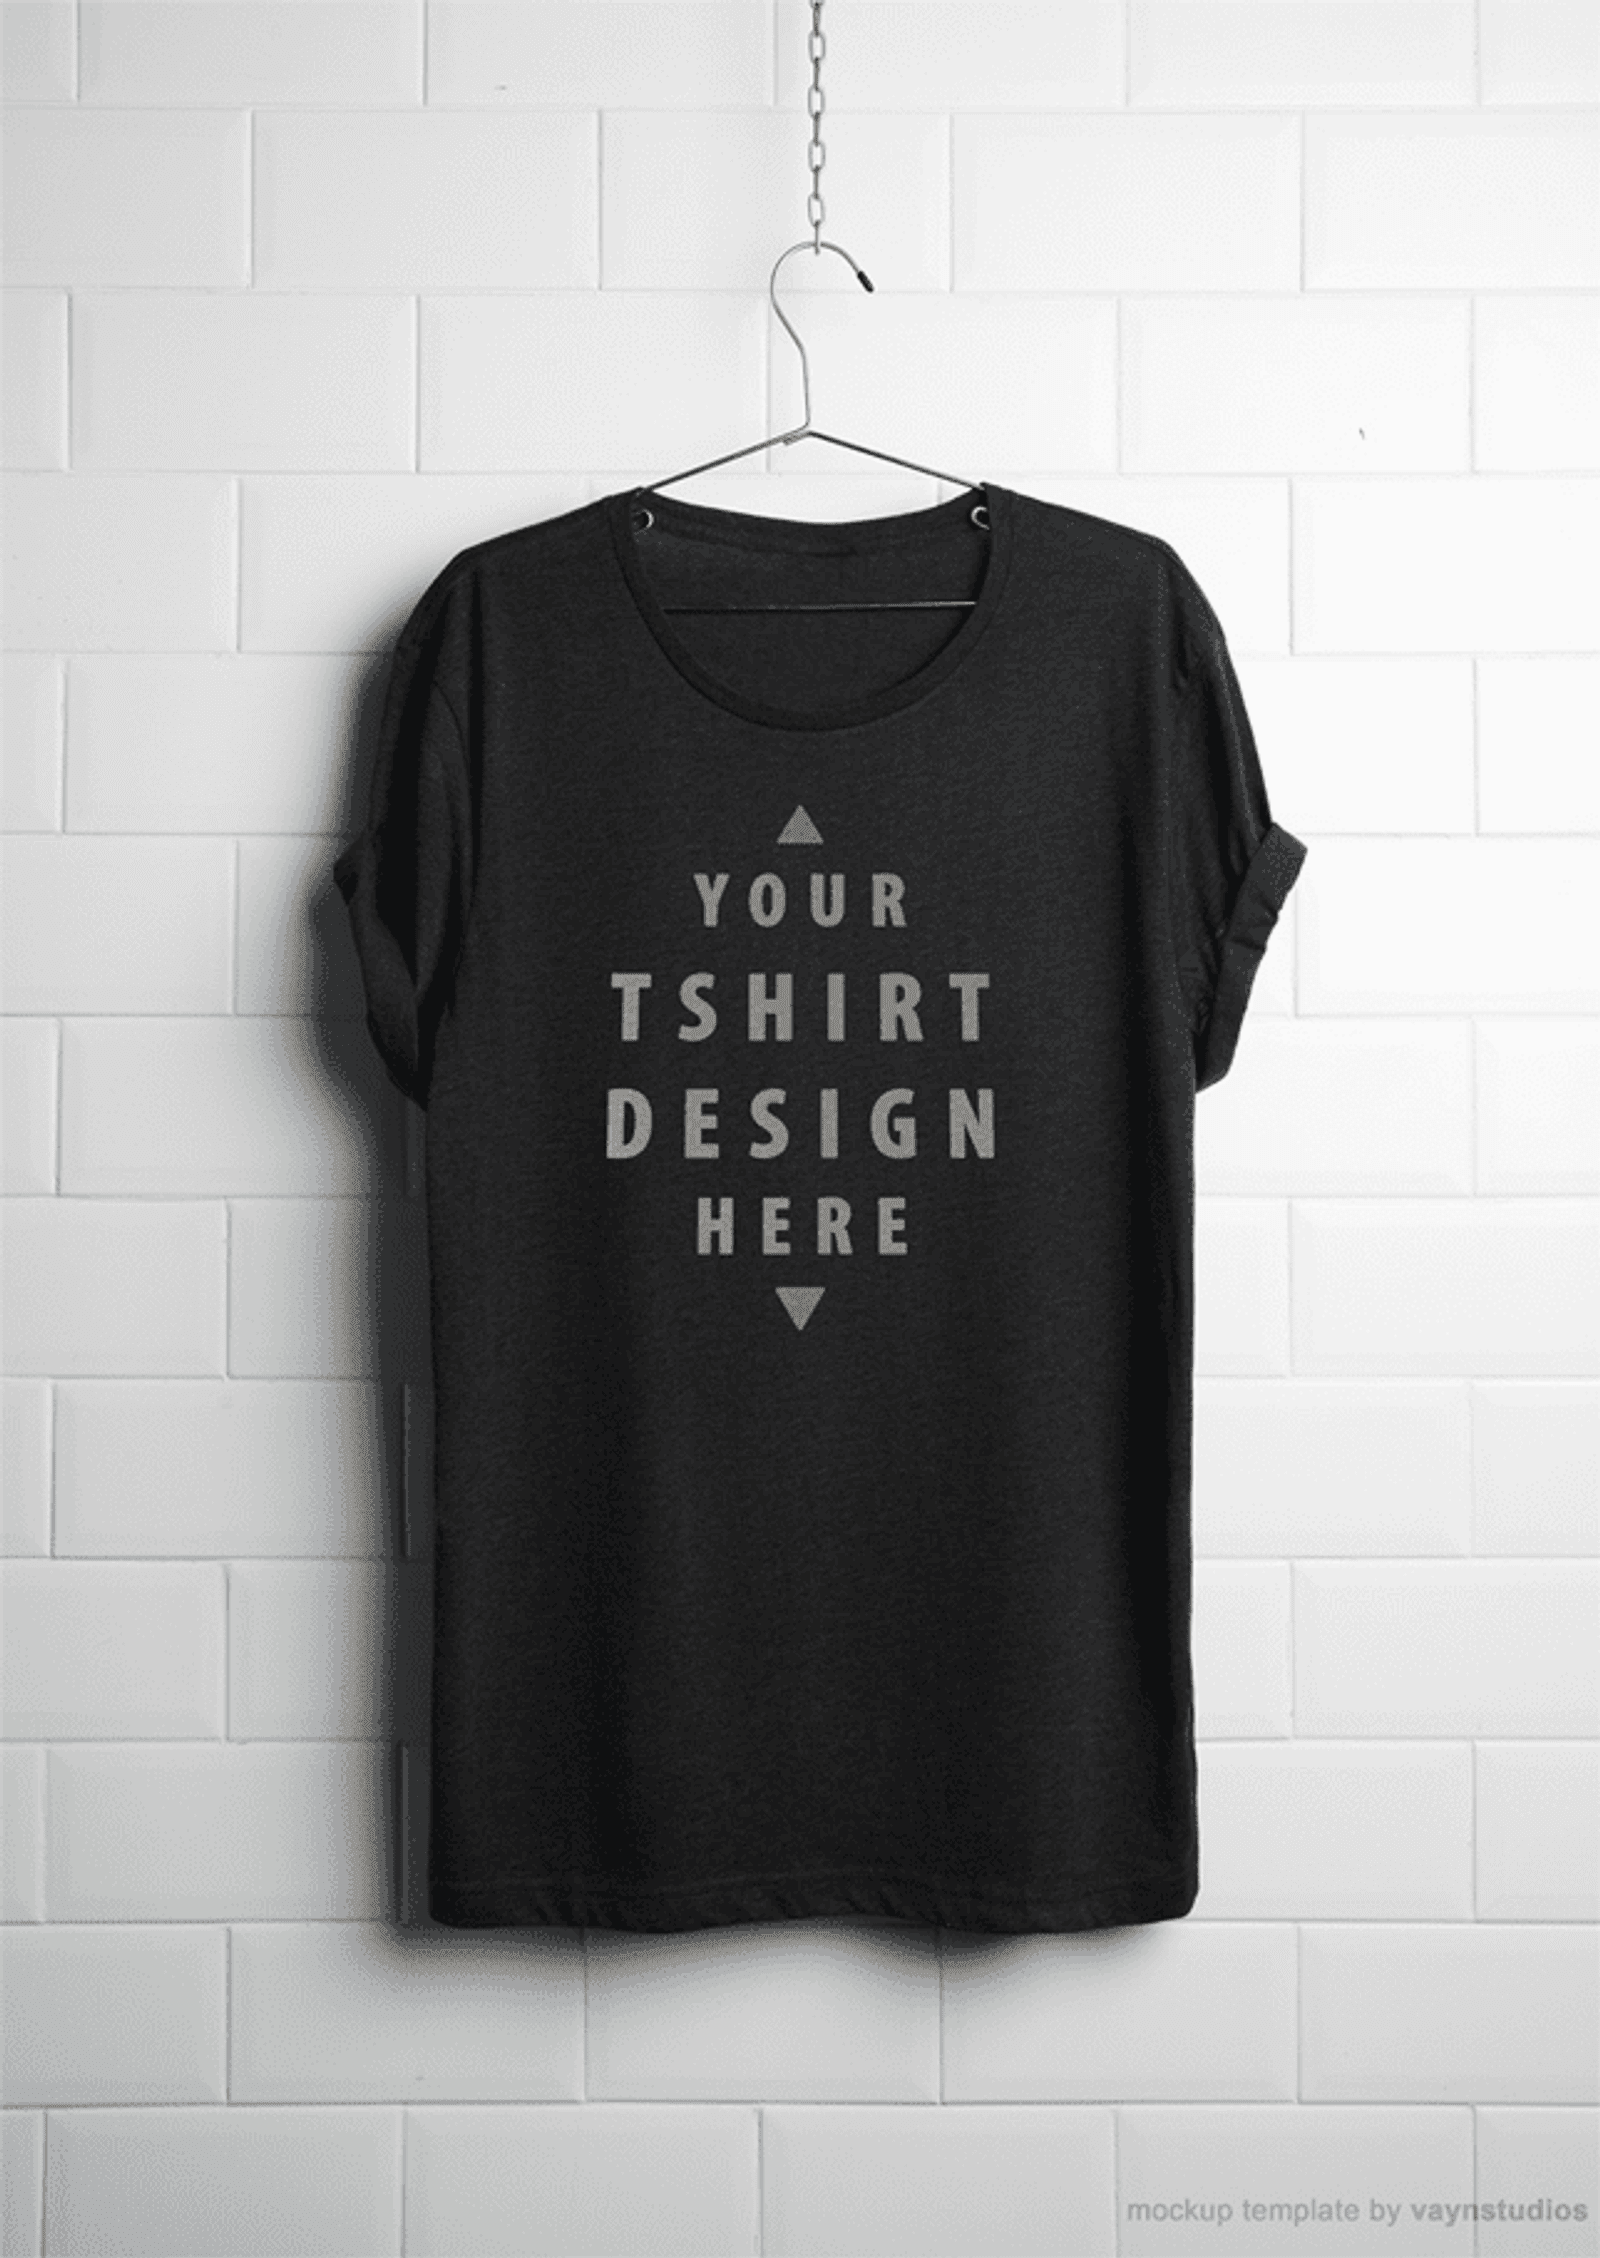 How To Design A T Shirt From Scratch